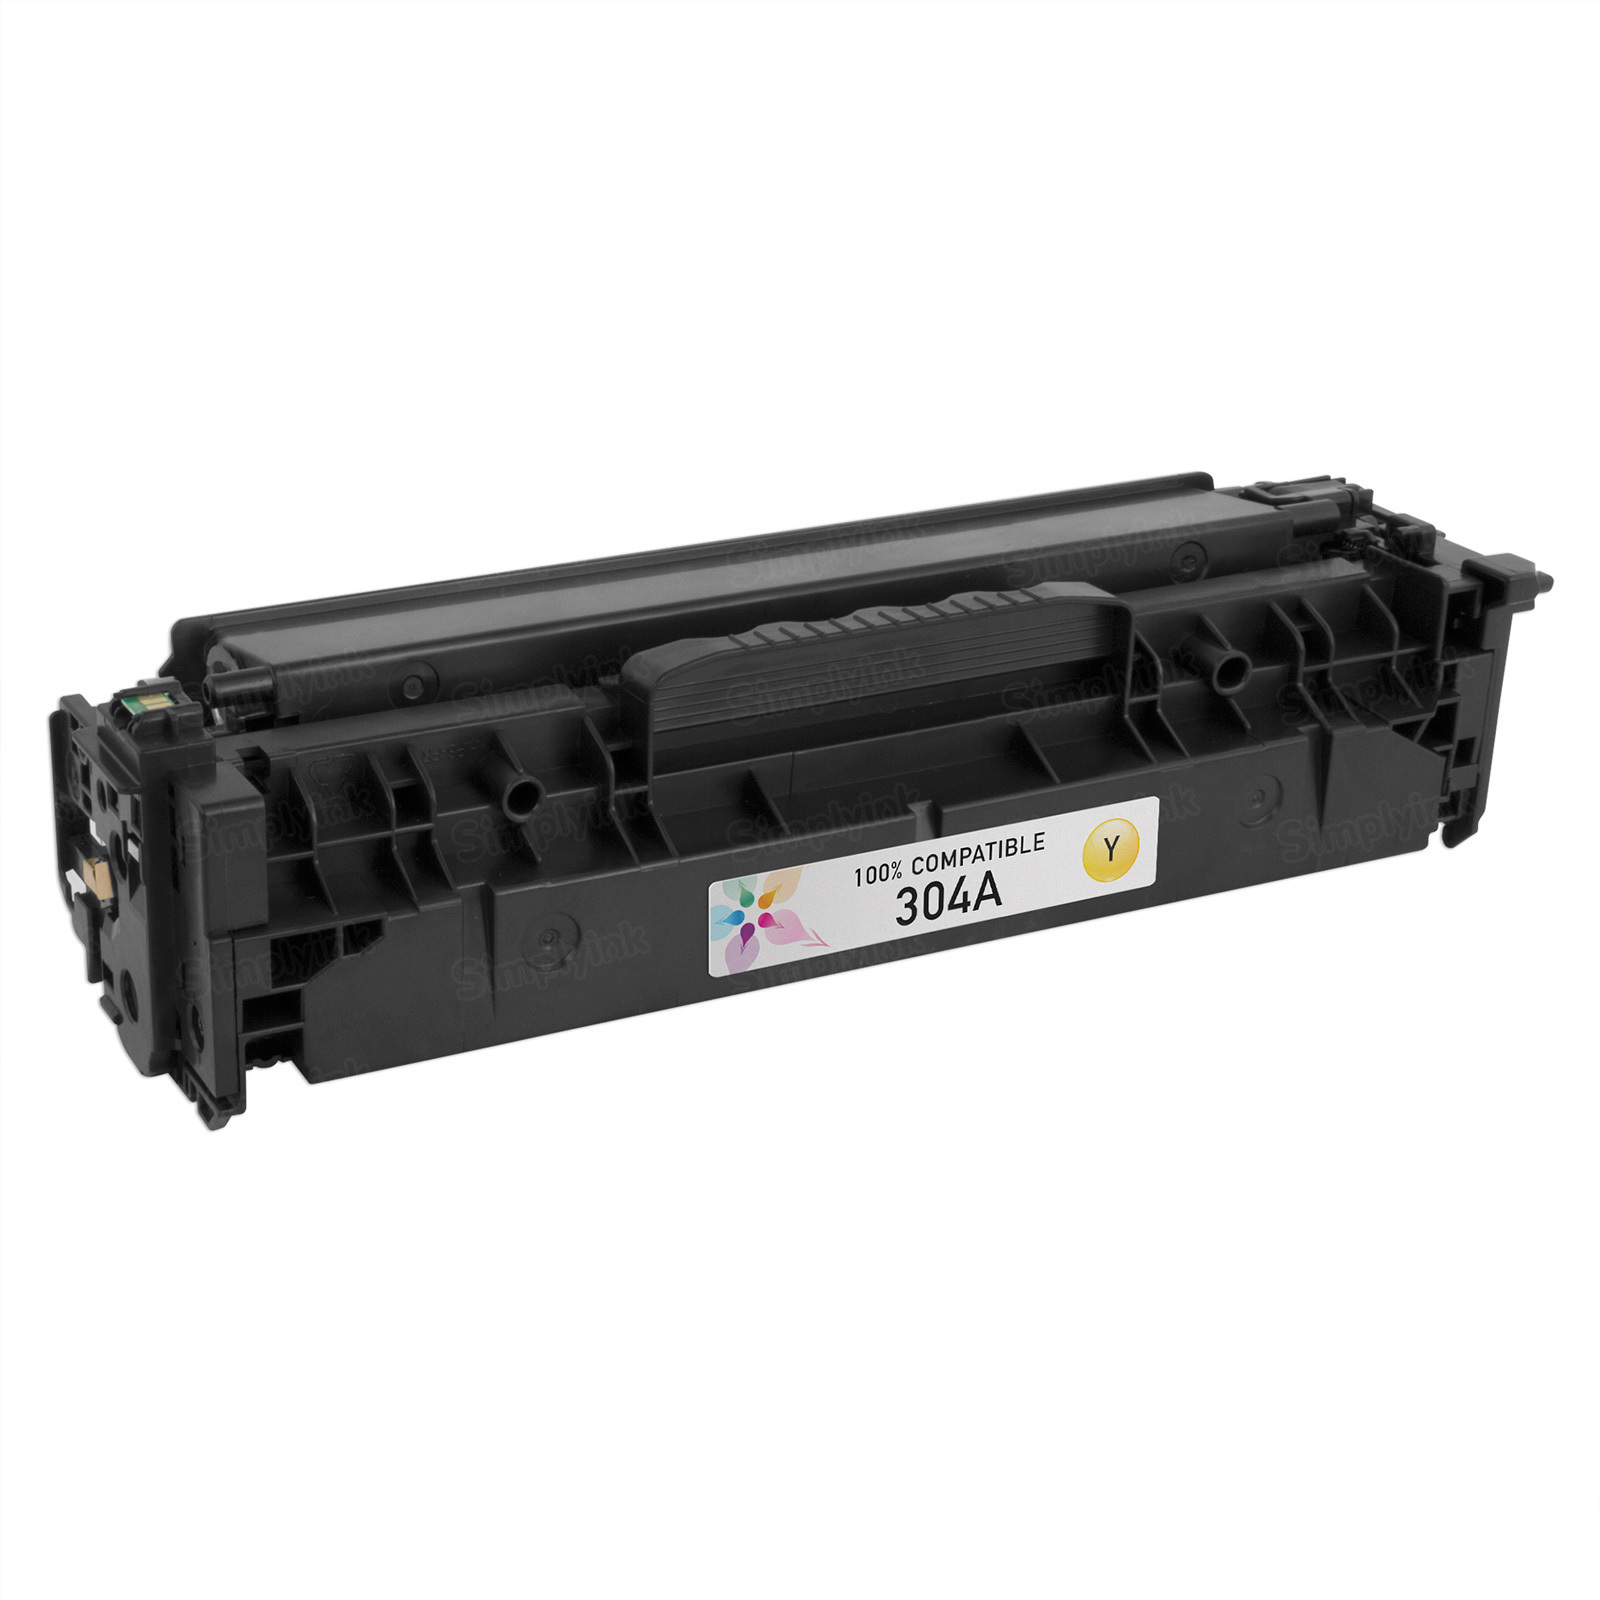 Replacement Yellow Toner for HP 304A